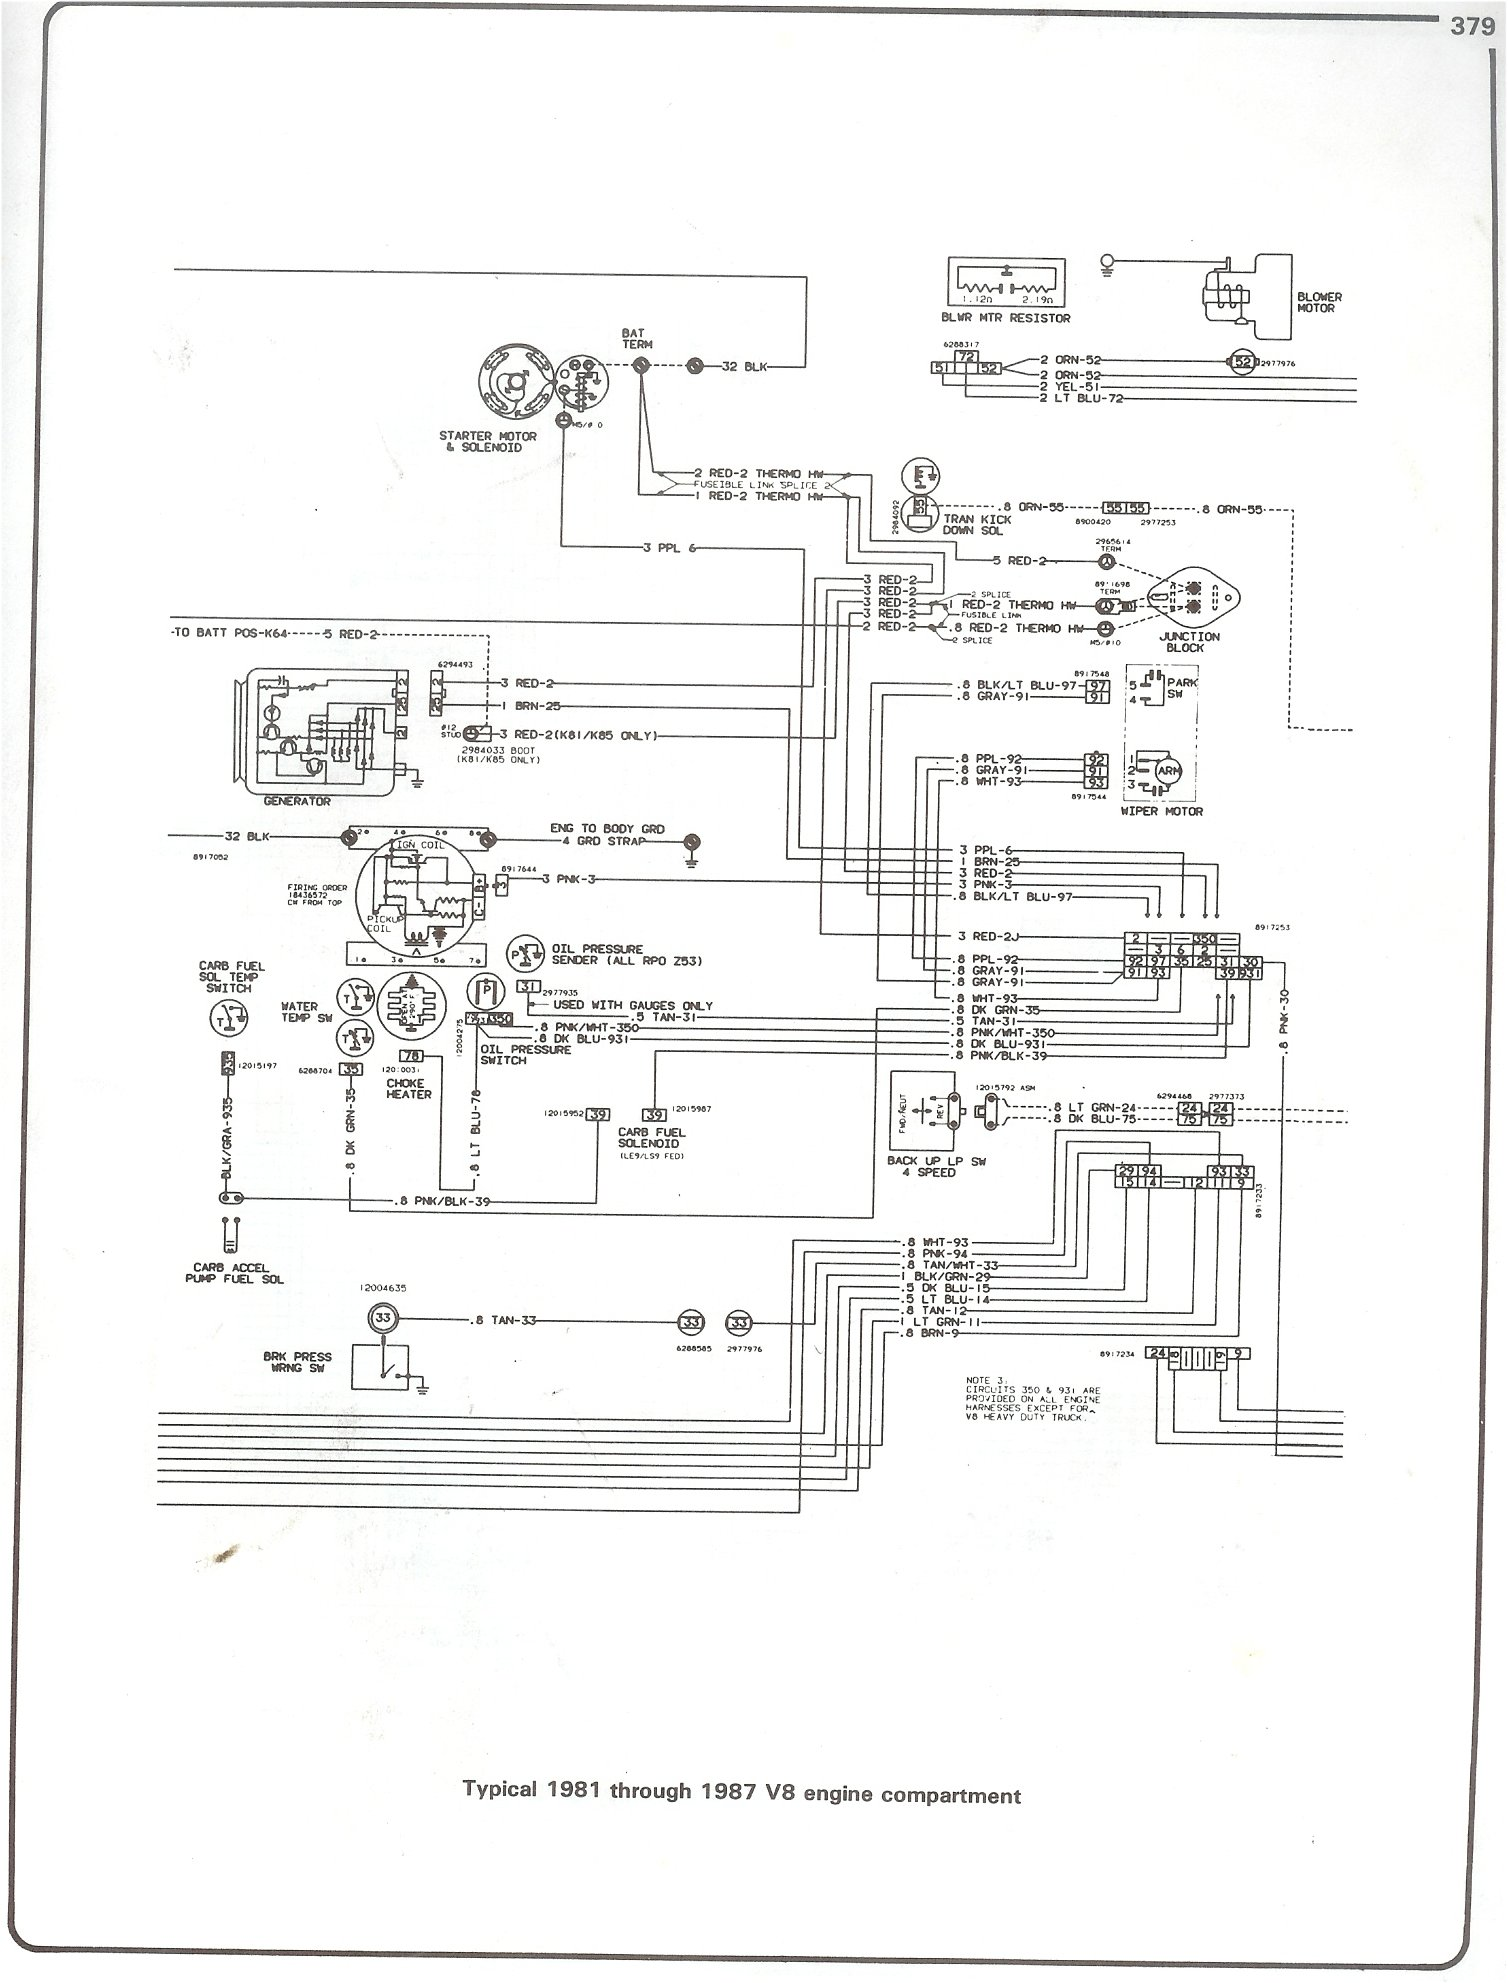 electrical diagram 1978 chevy truck with Index Php on 91 Ford F 250 Alternator Wiring Diagram together with gmtiltsteeringcolumn moreover Index php additionally Chevrolet Wiring Diagram Symbols Website together with 1977 Corvette Fuse Box Wiring Diagram.